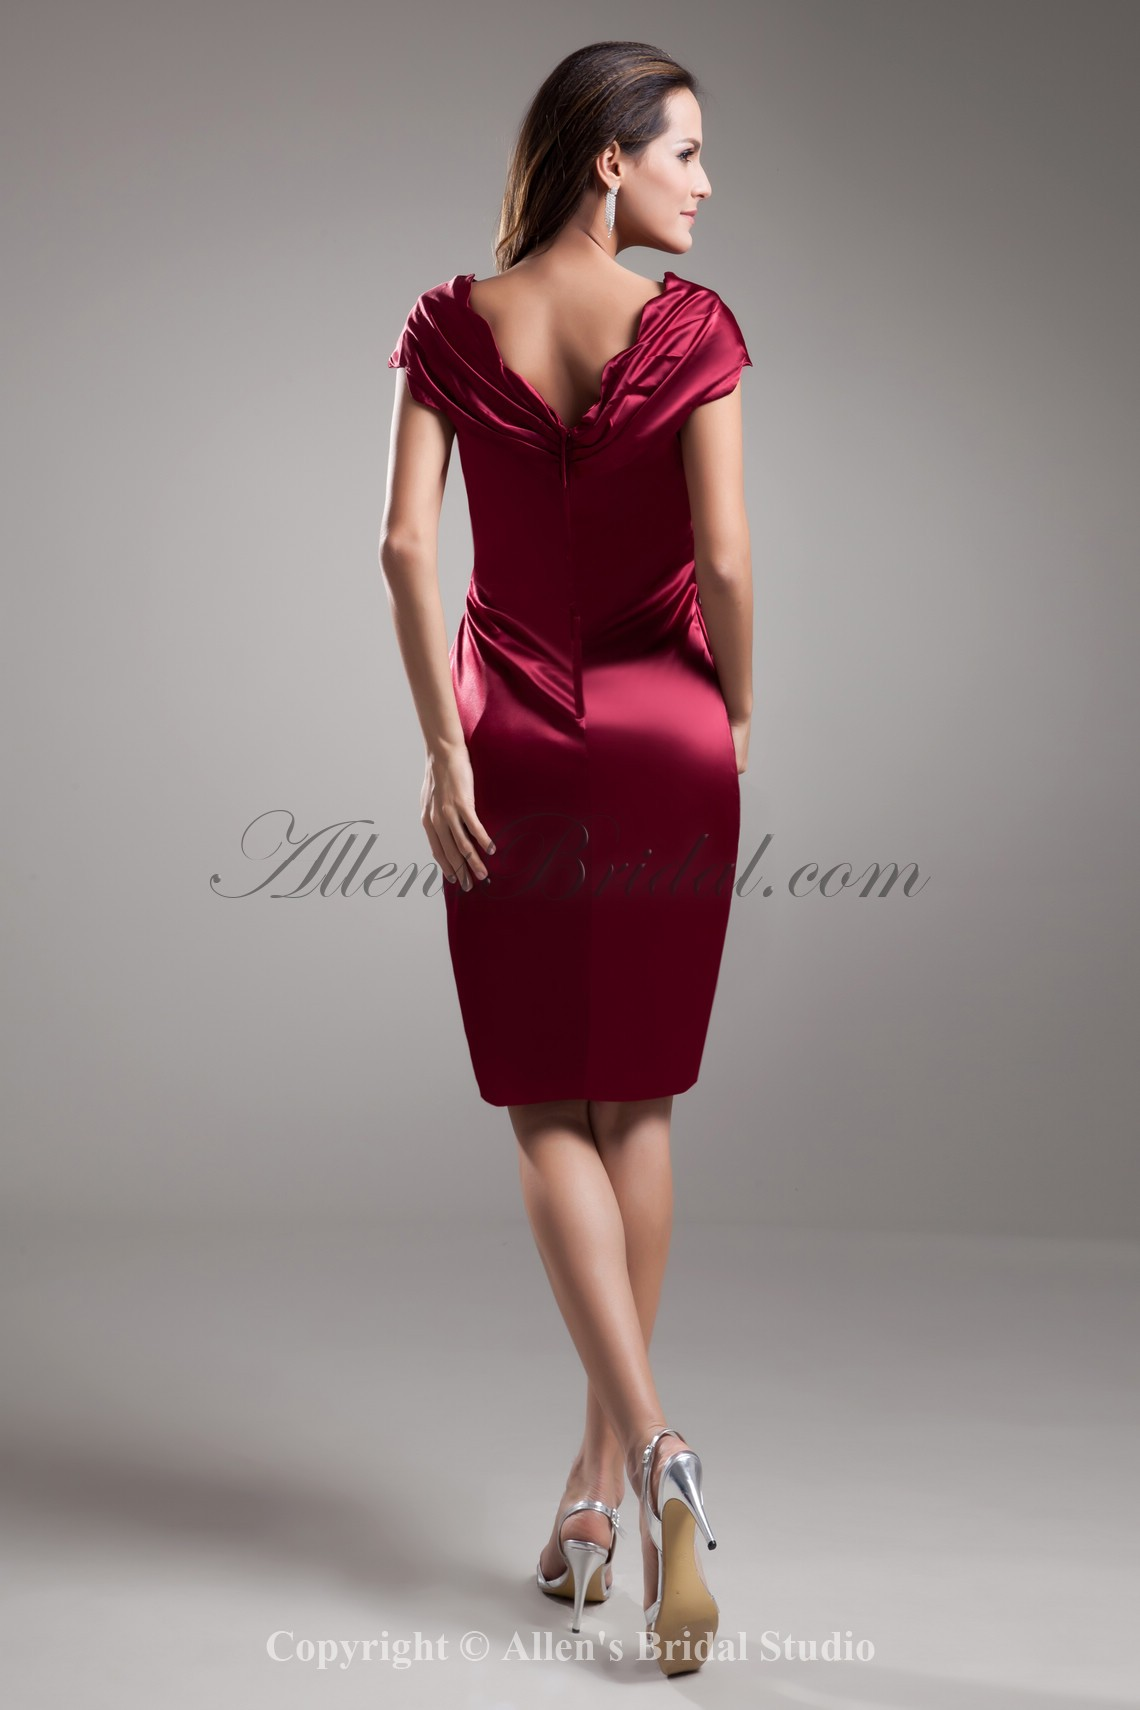 /711-5698/satin-v-neck-neckline-knee-length-sheath-cap-sleeves-cocktail-dress.jpg